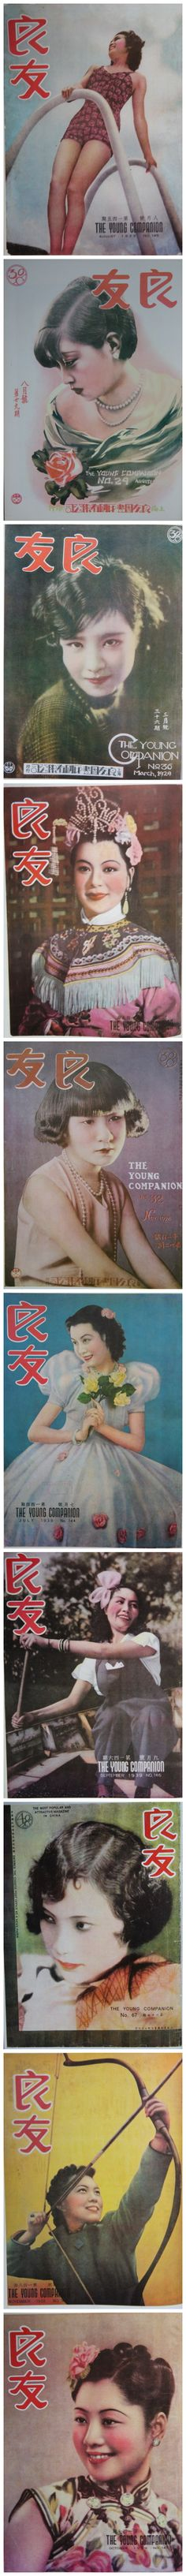 Vintage Chinese Magazine Covers